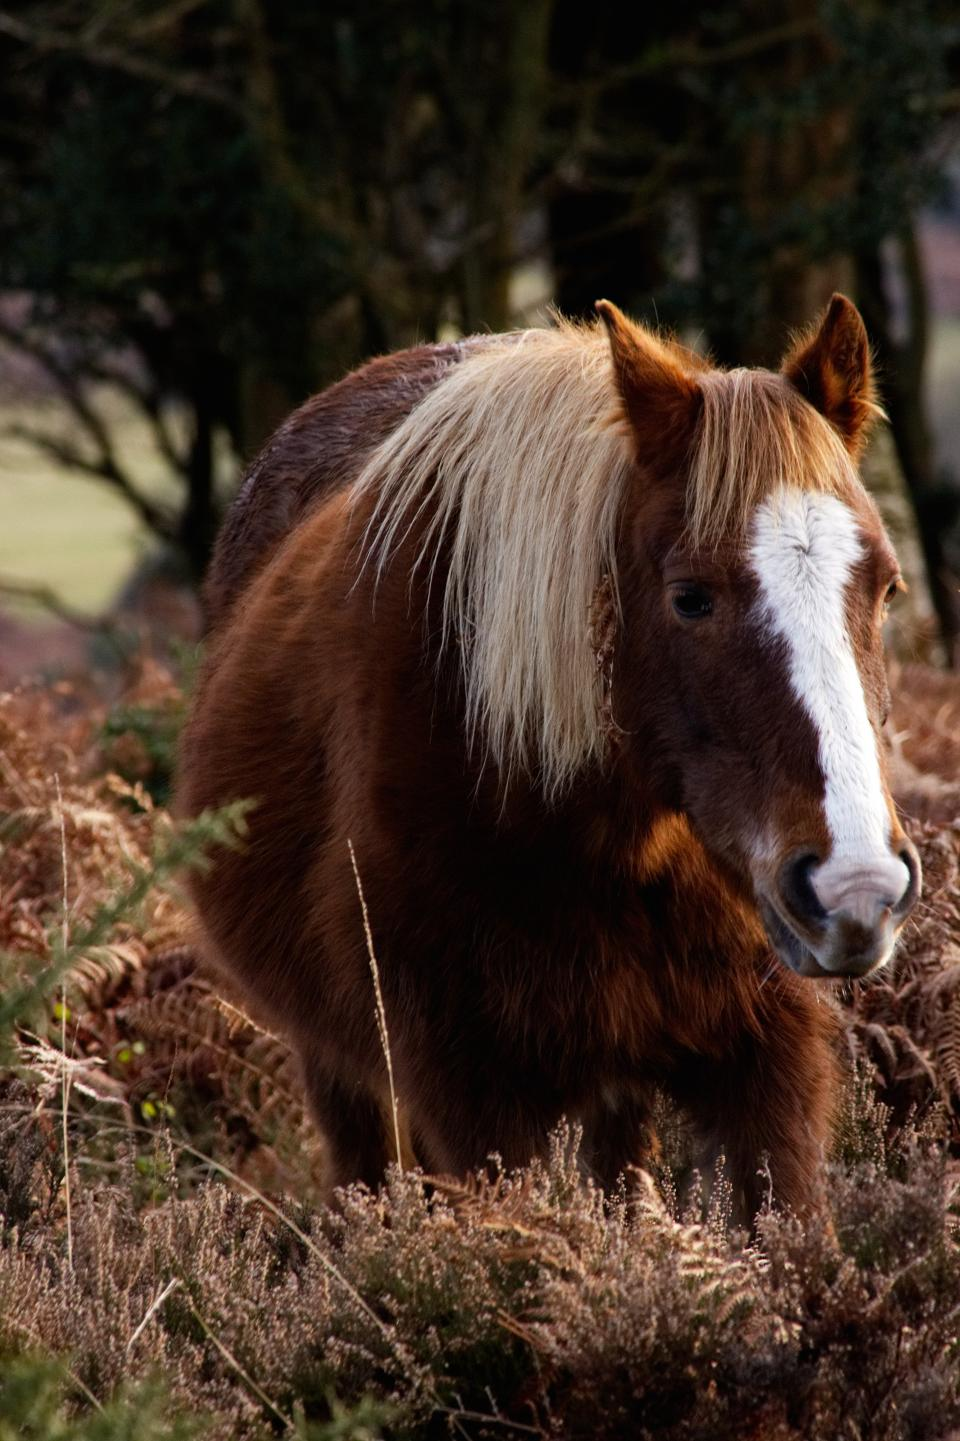 horse, animal, brown, grassland, plant, trees, woods, snout